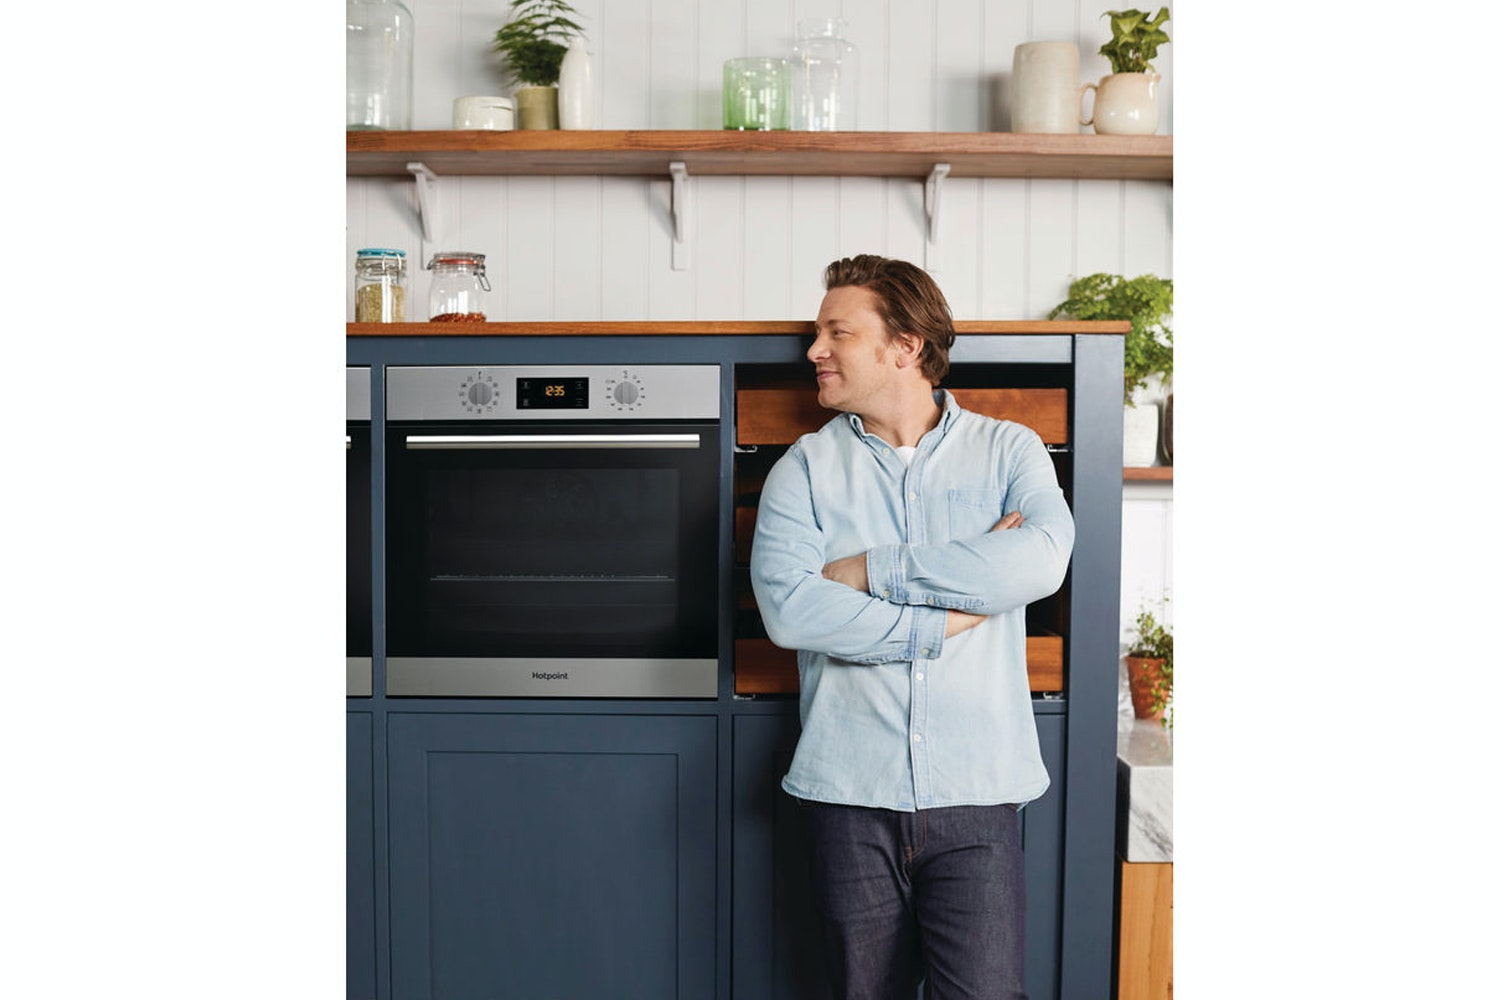 Hotpoint Class 2 Built-in Oven | SA2 544 CIX